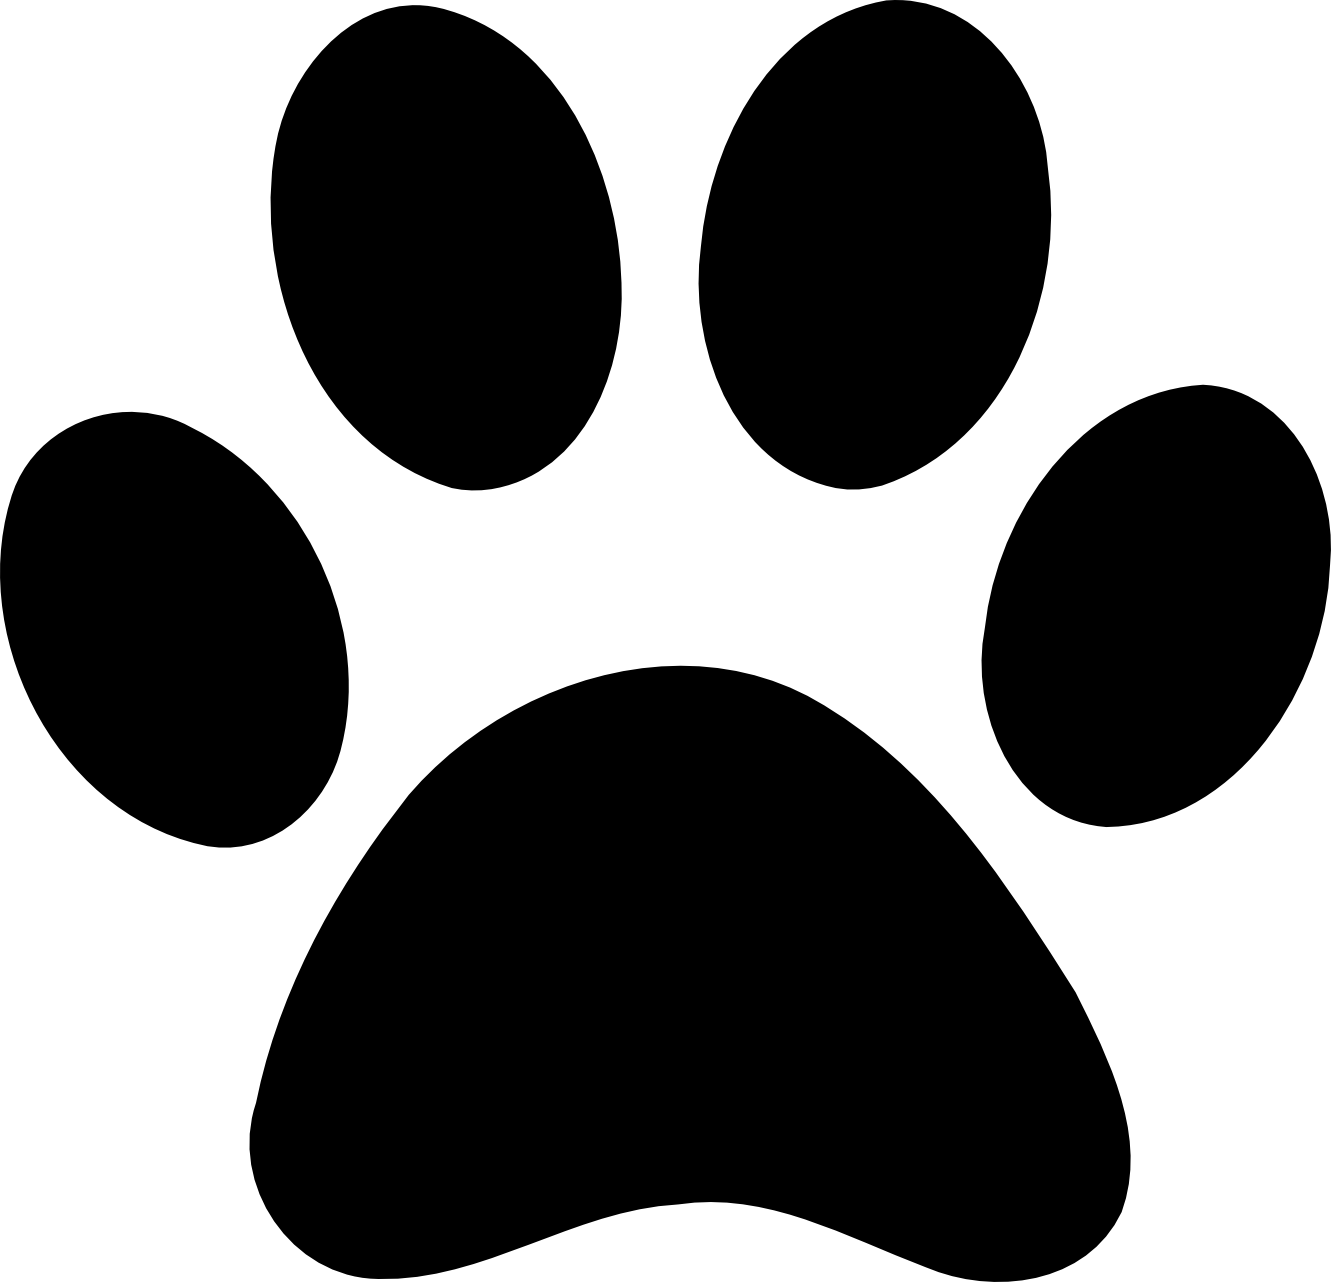 Dog footprint clipart png black and white library Dog Bone Graphic | Black Dog Bone Clipart | Wool Felt Applique ... png black and white library